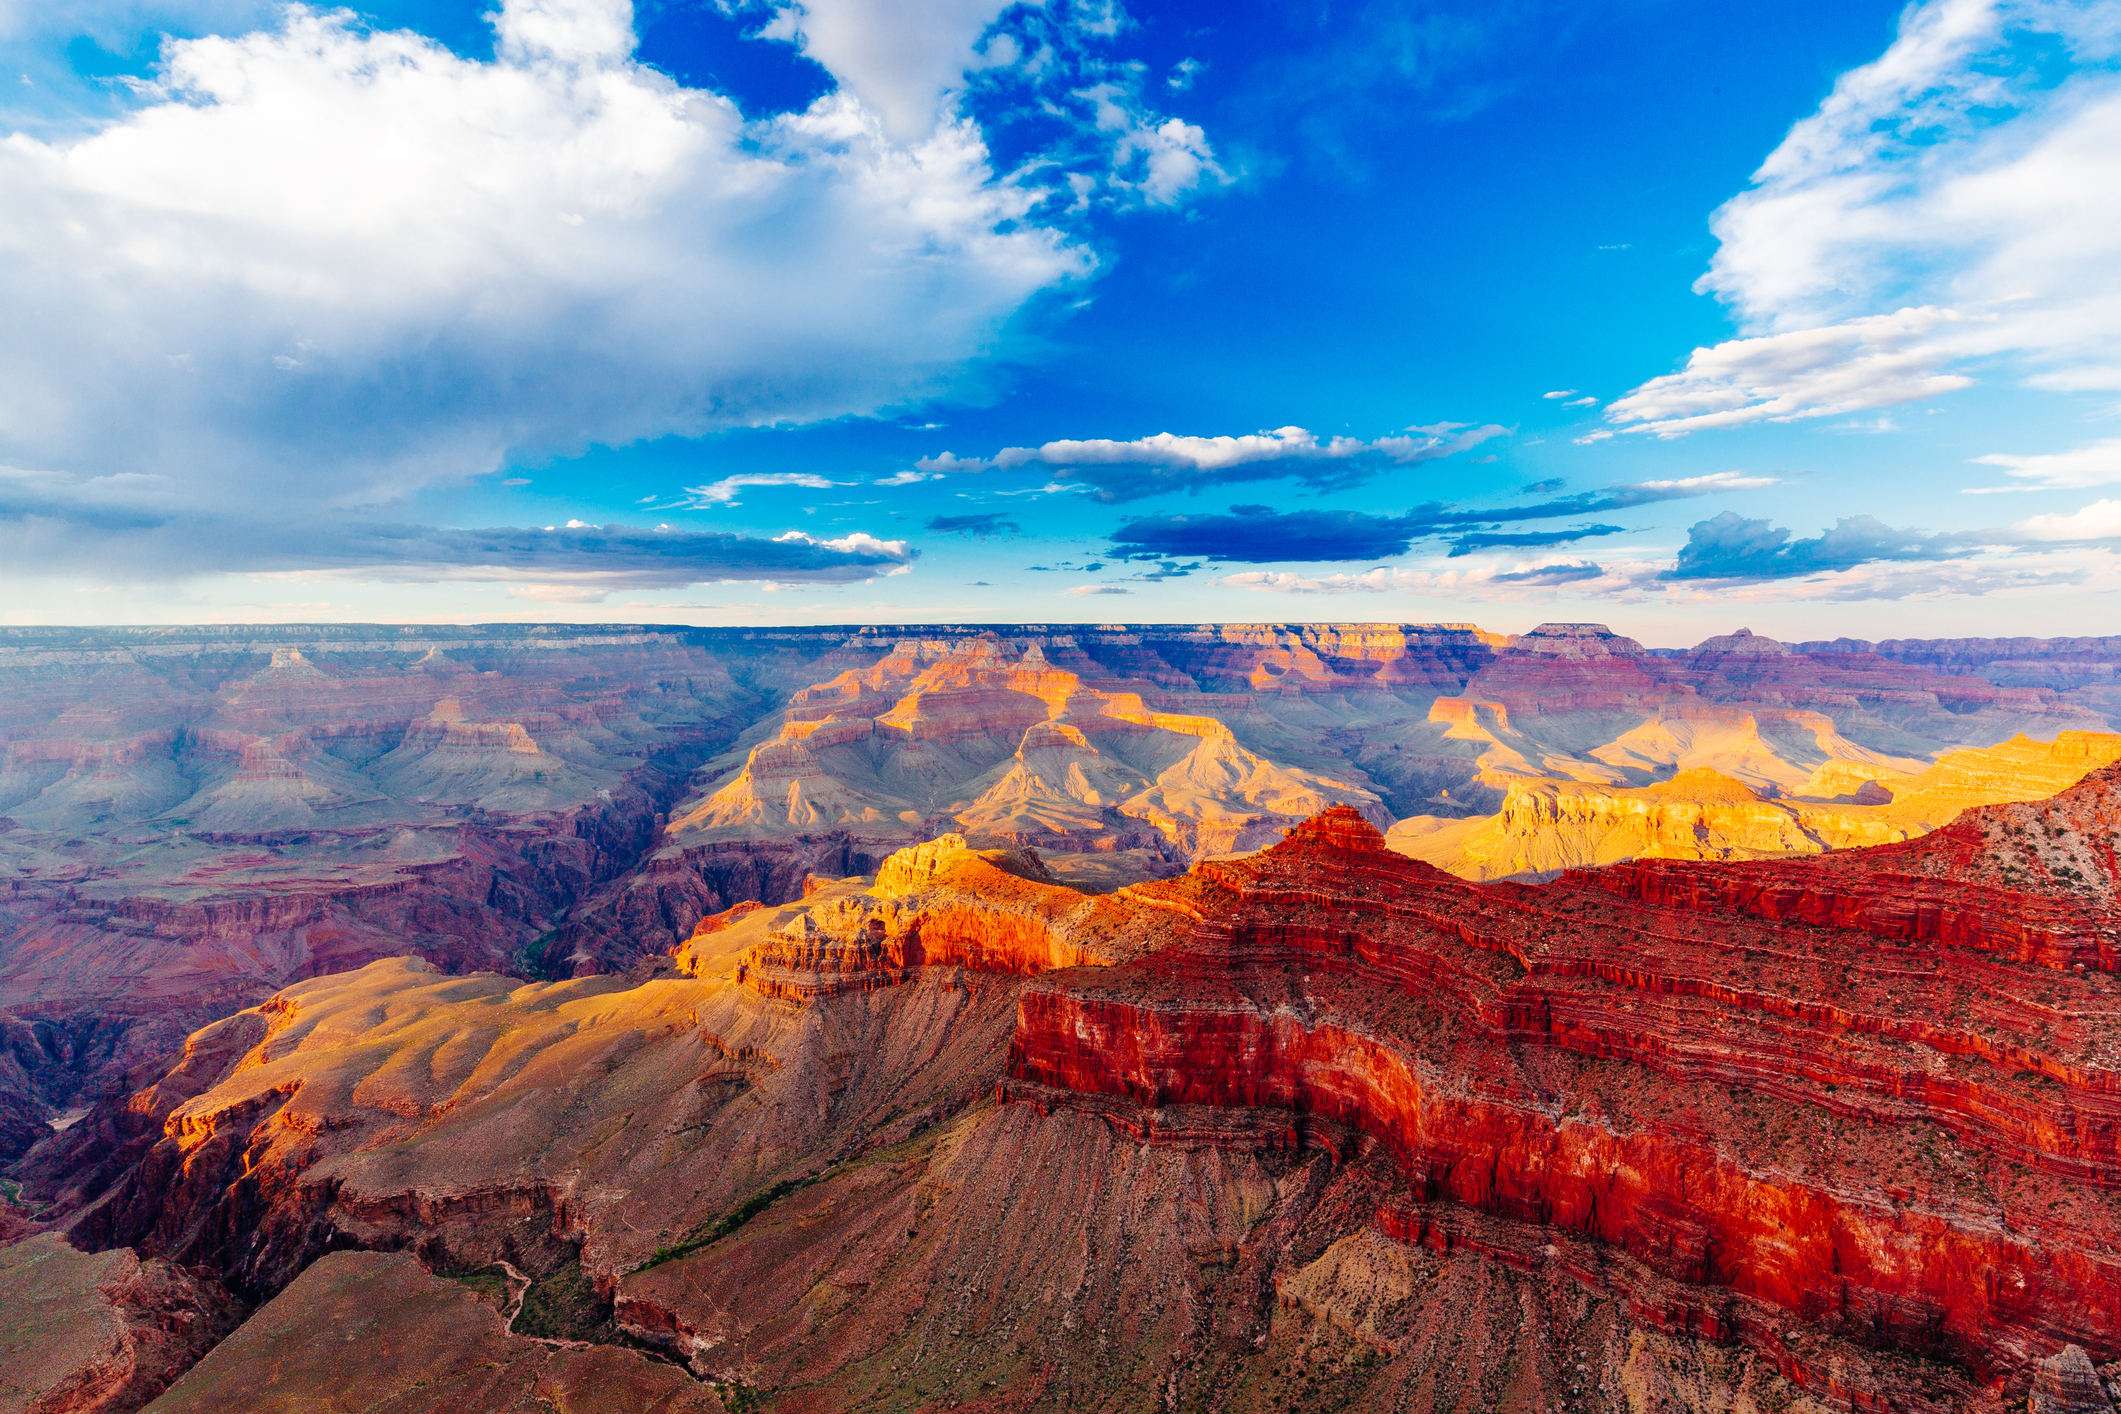 3-Day Grand Canyon and More National Parks Tour from Las Vegas